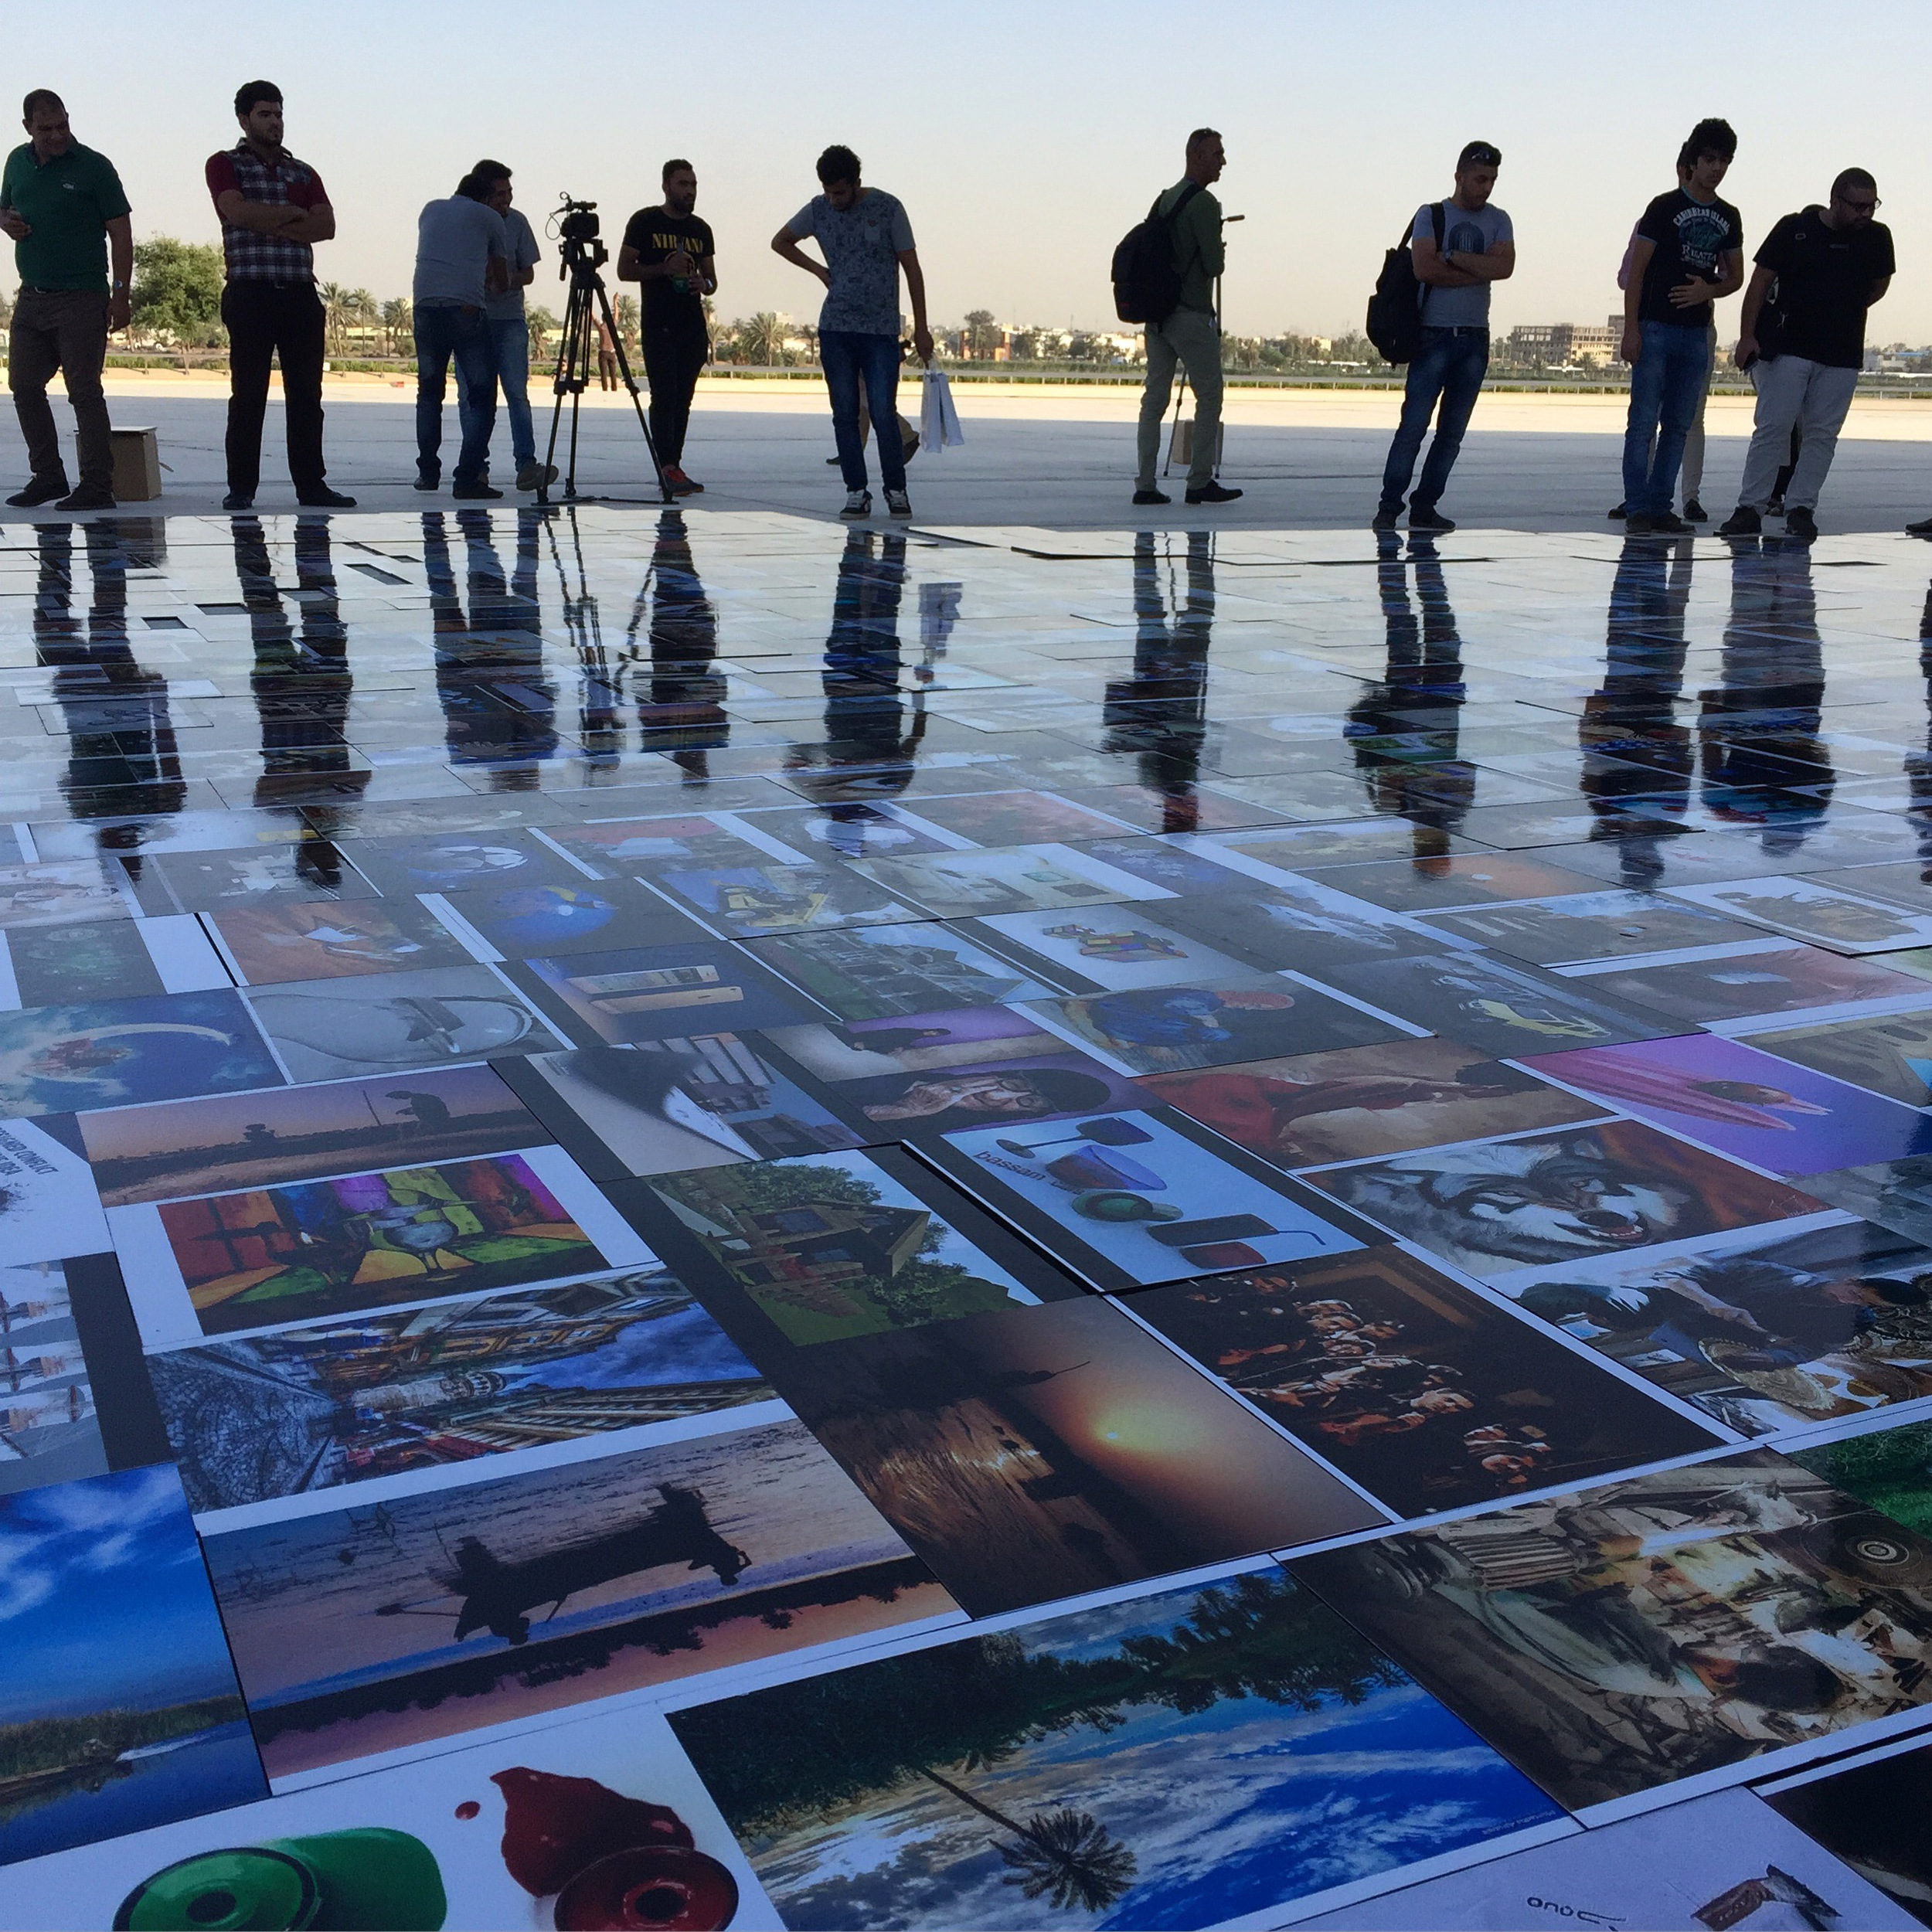 People view artworks made by young Iraqis that together form a map of Iraq at the Martyrs Monument in Baghdad, Iraq. (Ahmad Mousa)